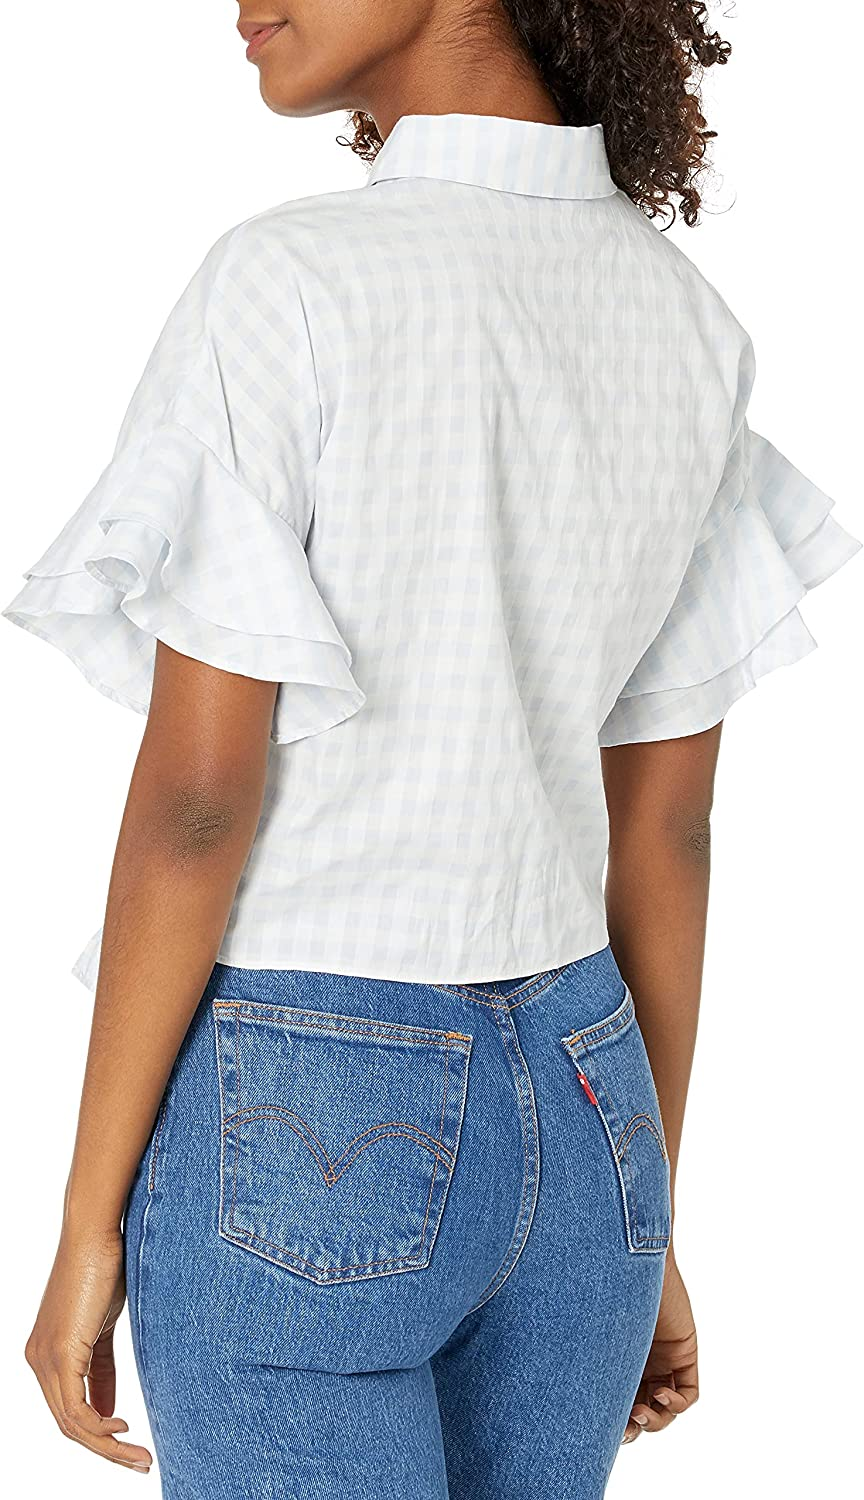 cupcakes and cashmere Women's Sunnie Gingham Blouse with Ruffle Sleeve Top